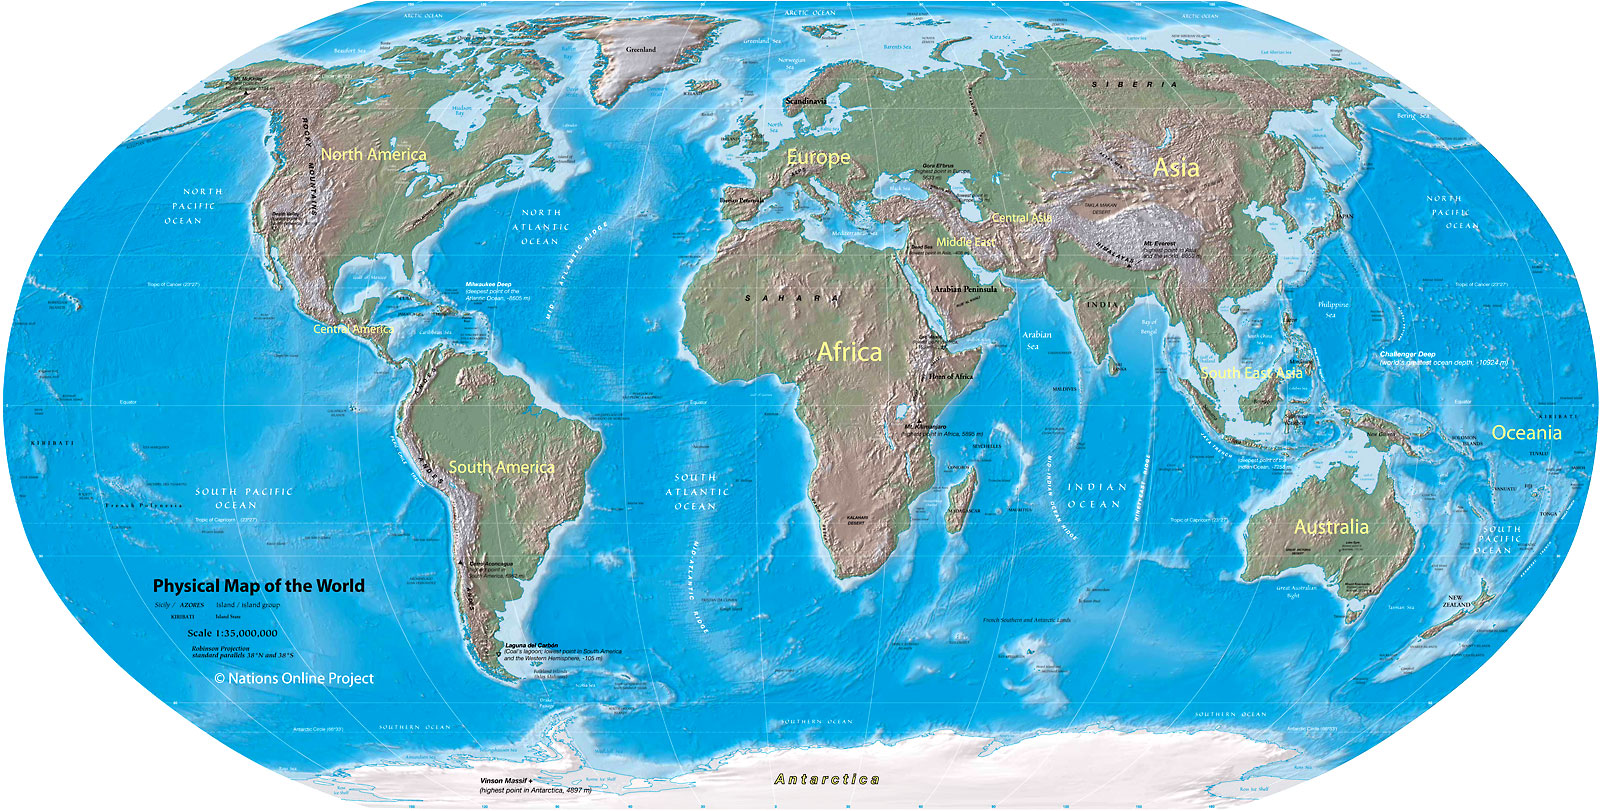 World Map Physical Map Of The World Nations Online Project - The physical world continents and oceans